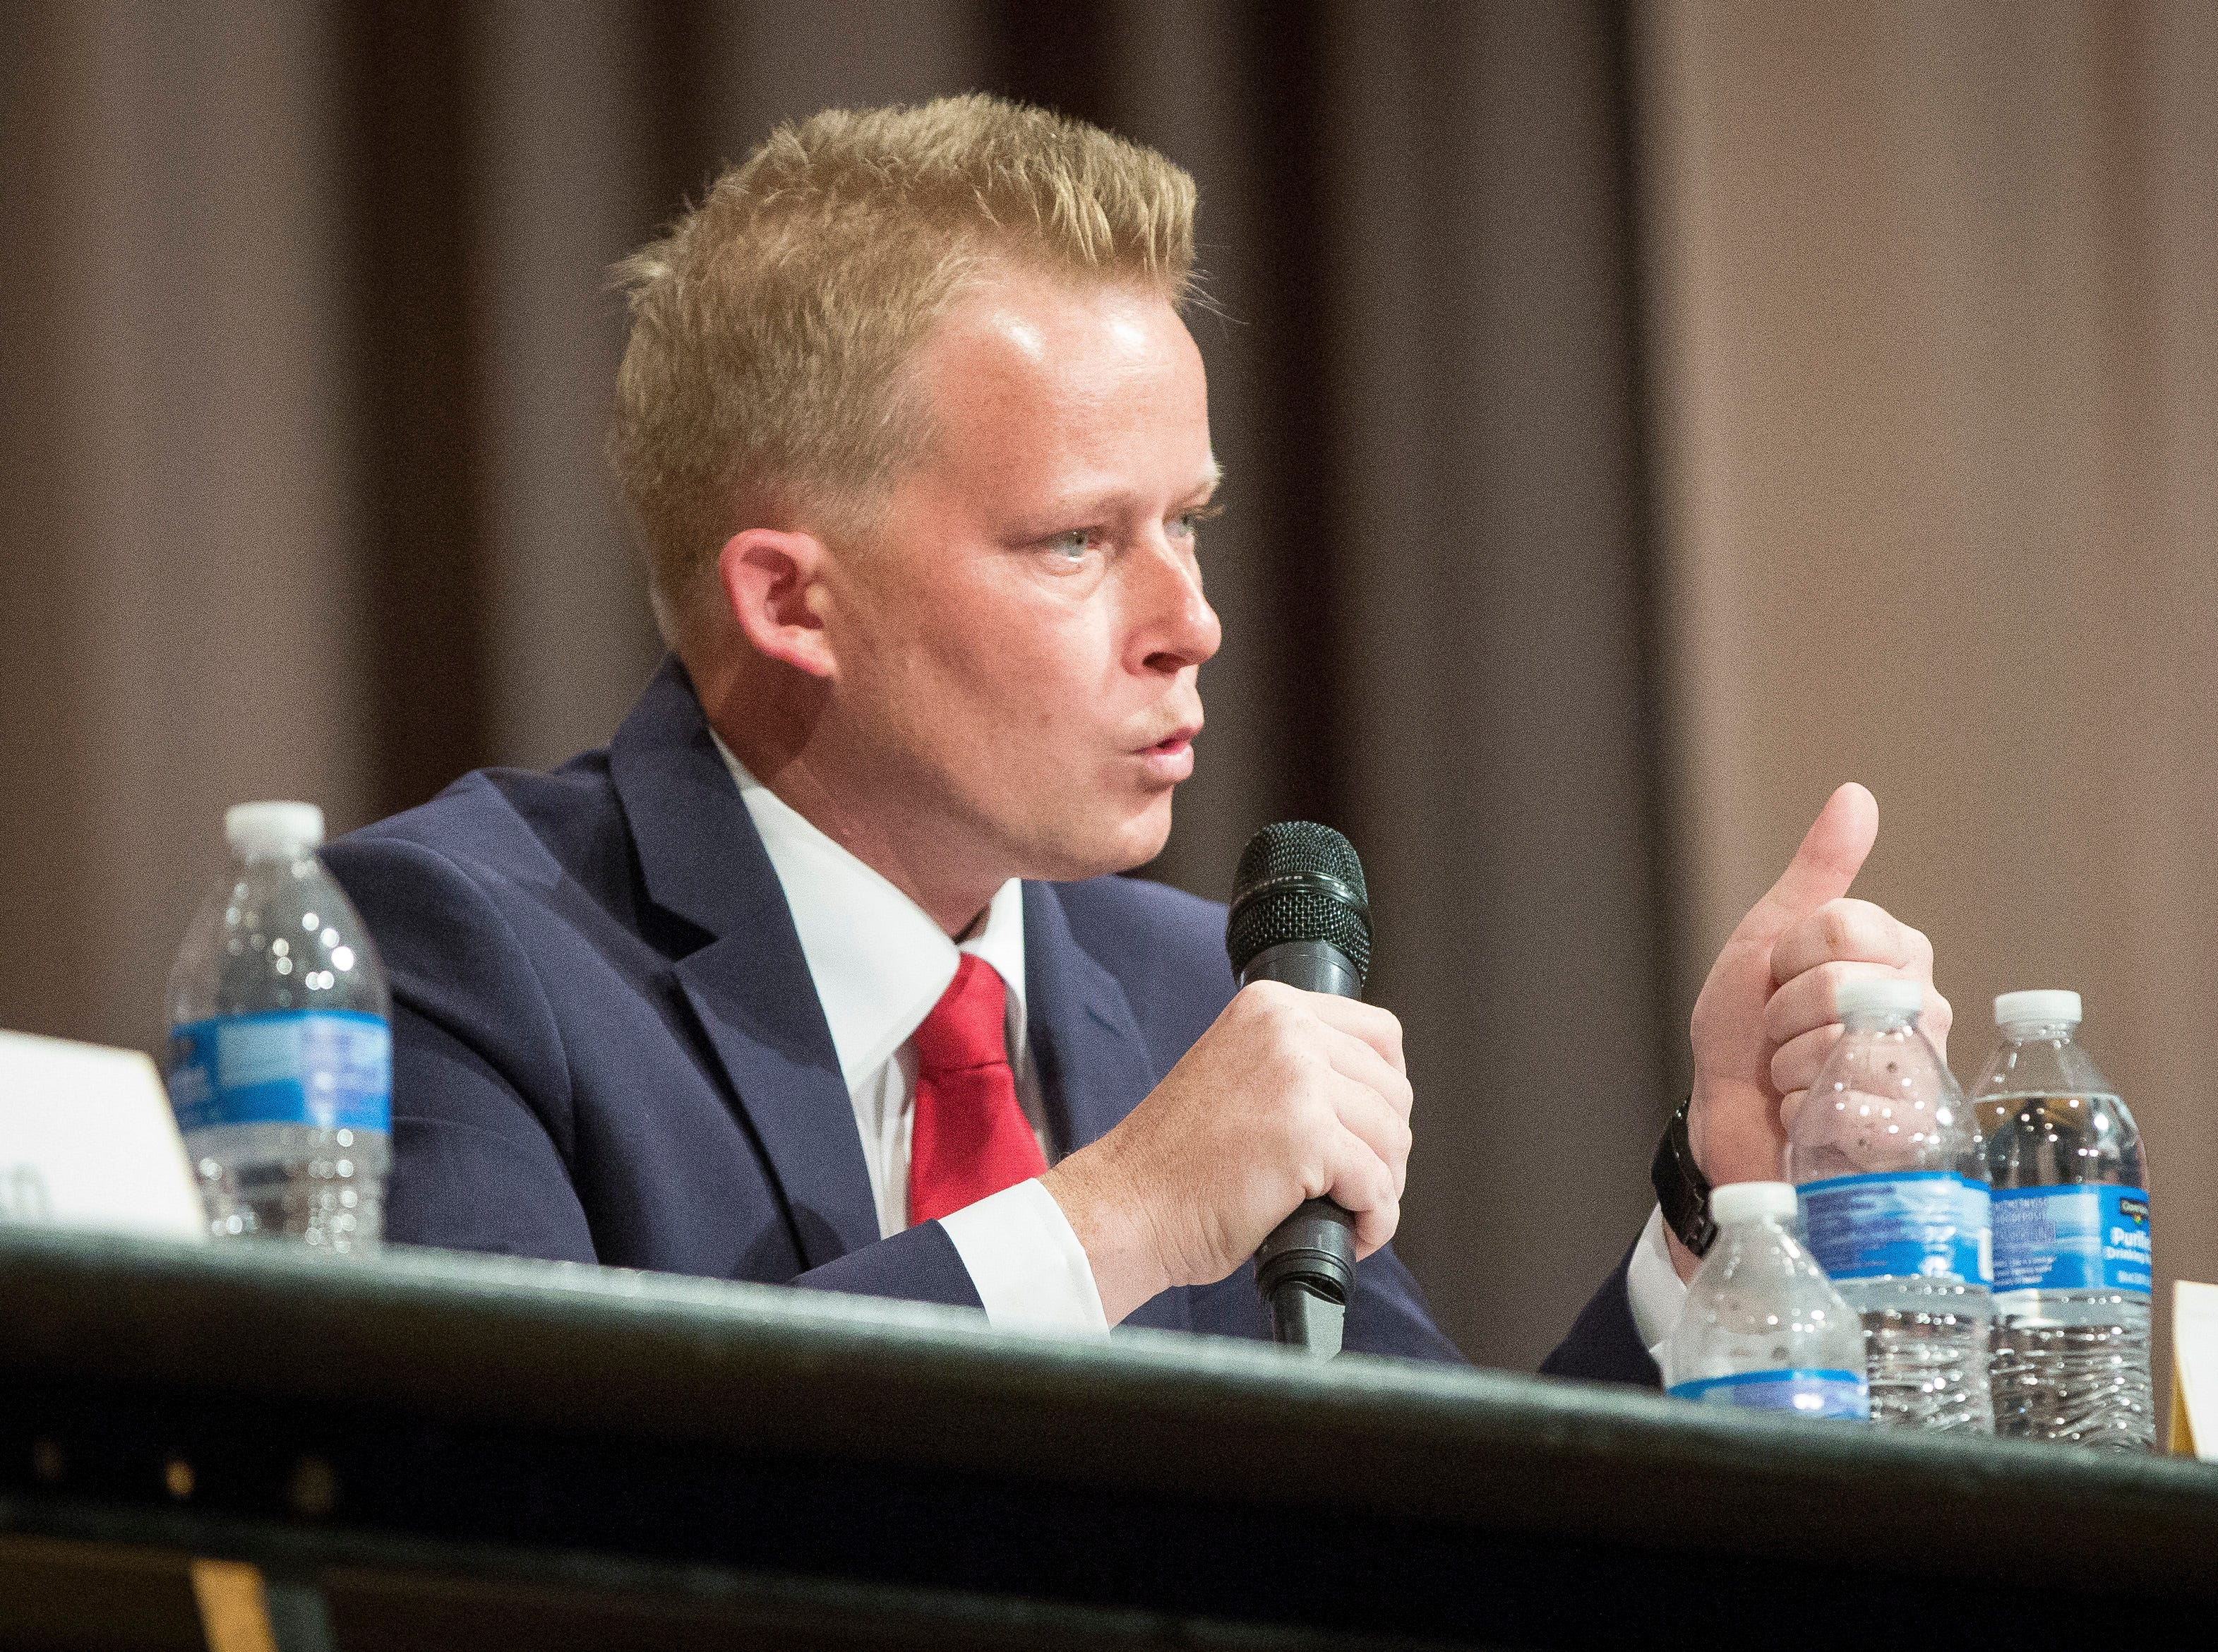 Nate Jones answers a question from the moderators during the Republican mayoral debate on April 23 at Northside Middle School. The primary is on May 7.